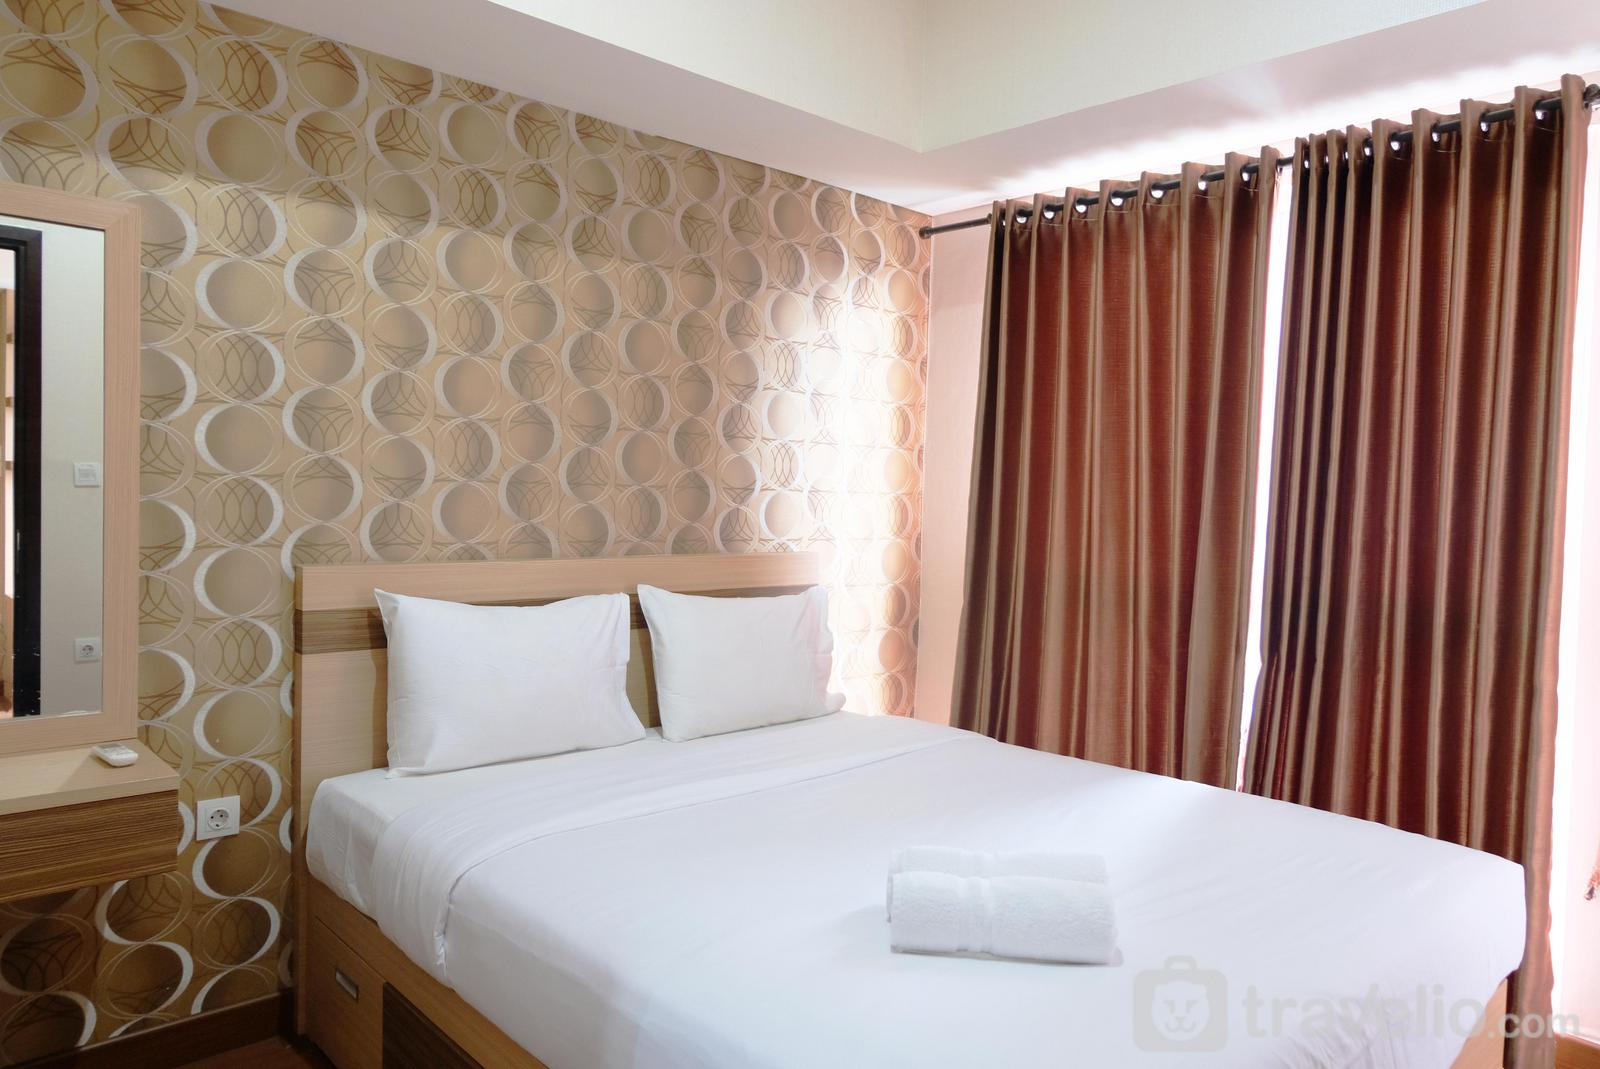 Casa de Parco Apartment - Cozy & Tranquil 1BR Apartment Casa De Parco BSD By Travelio